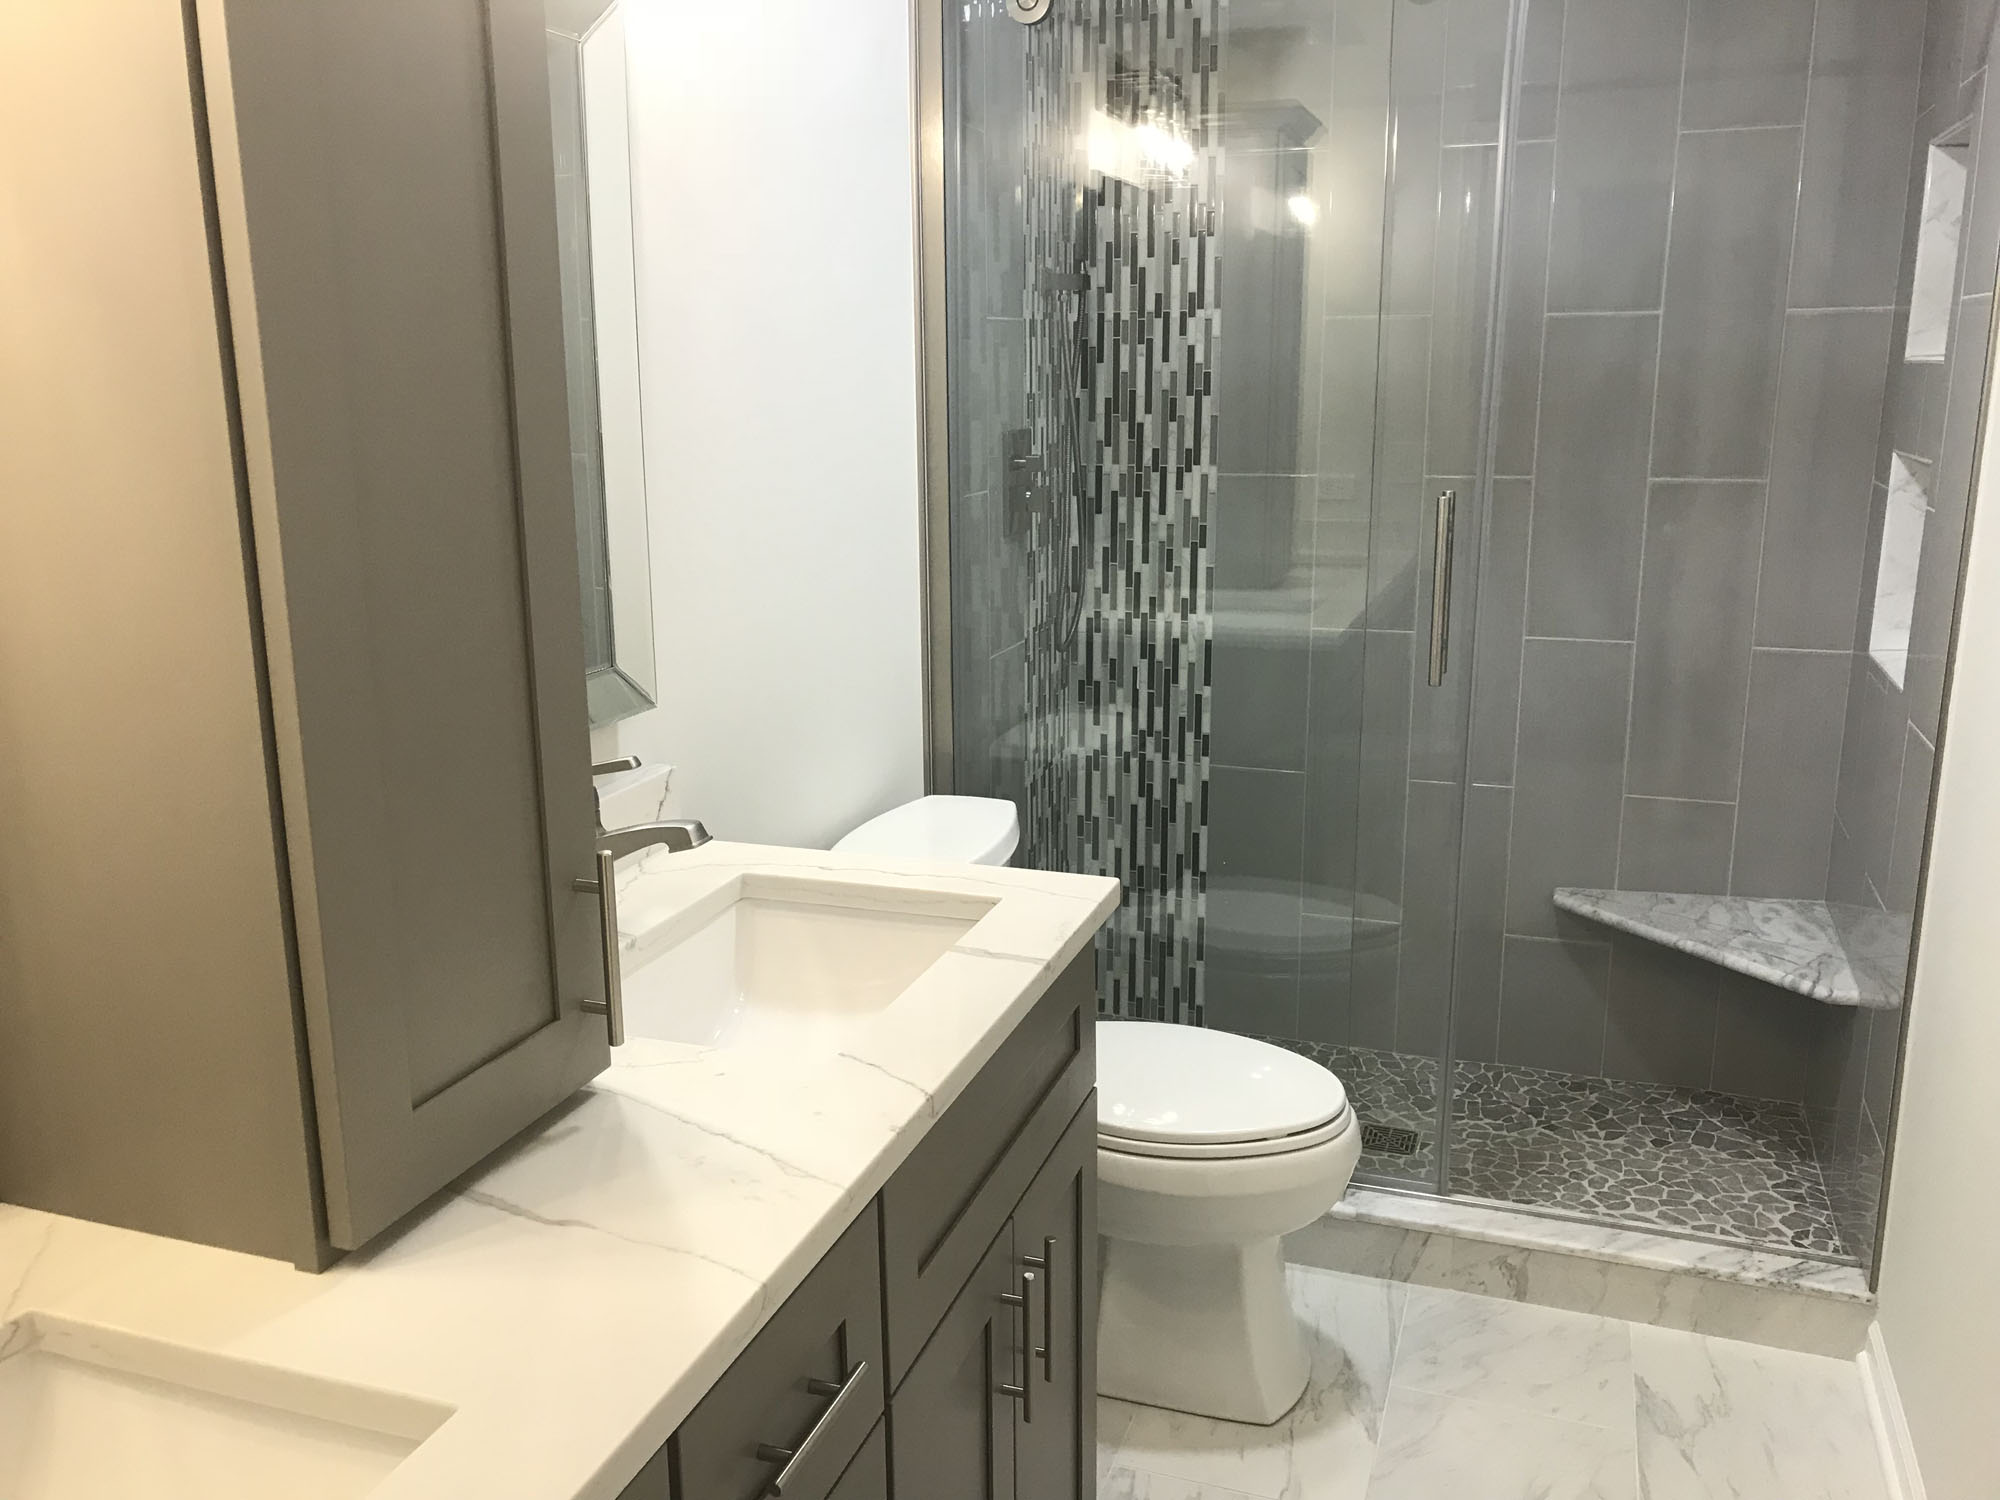 Remodeling contractors chicago sunny construction for Bathroom remodeling contractors chicago